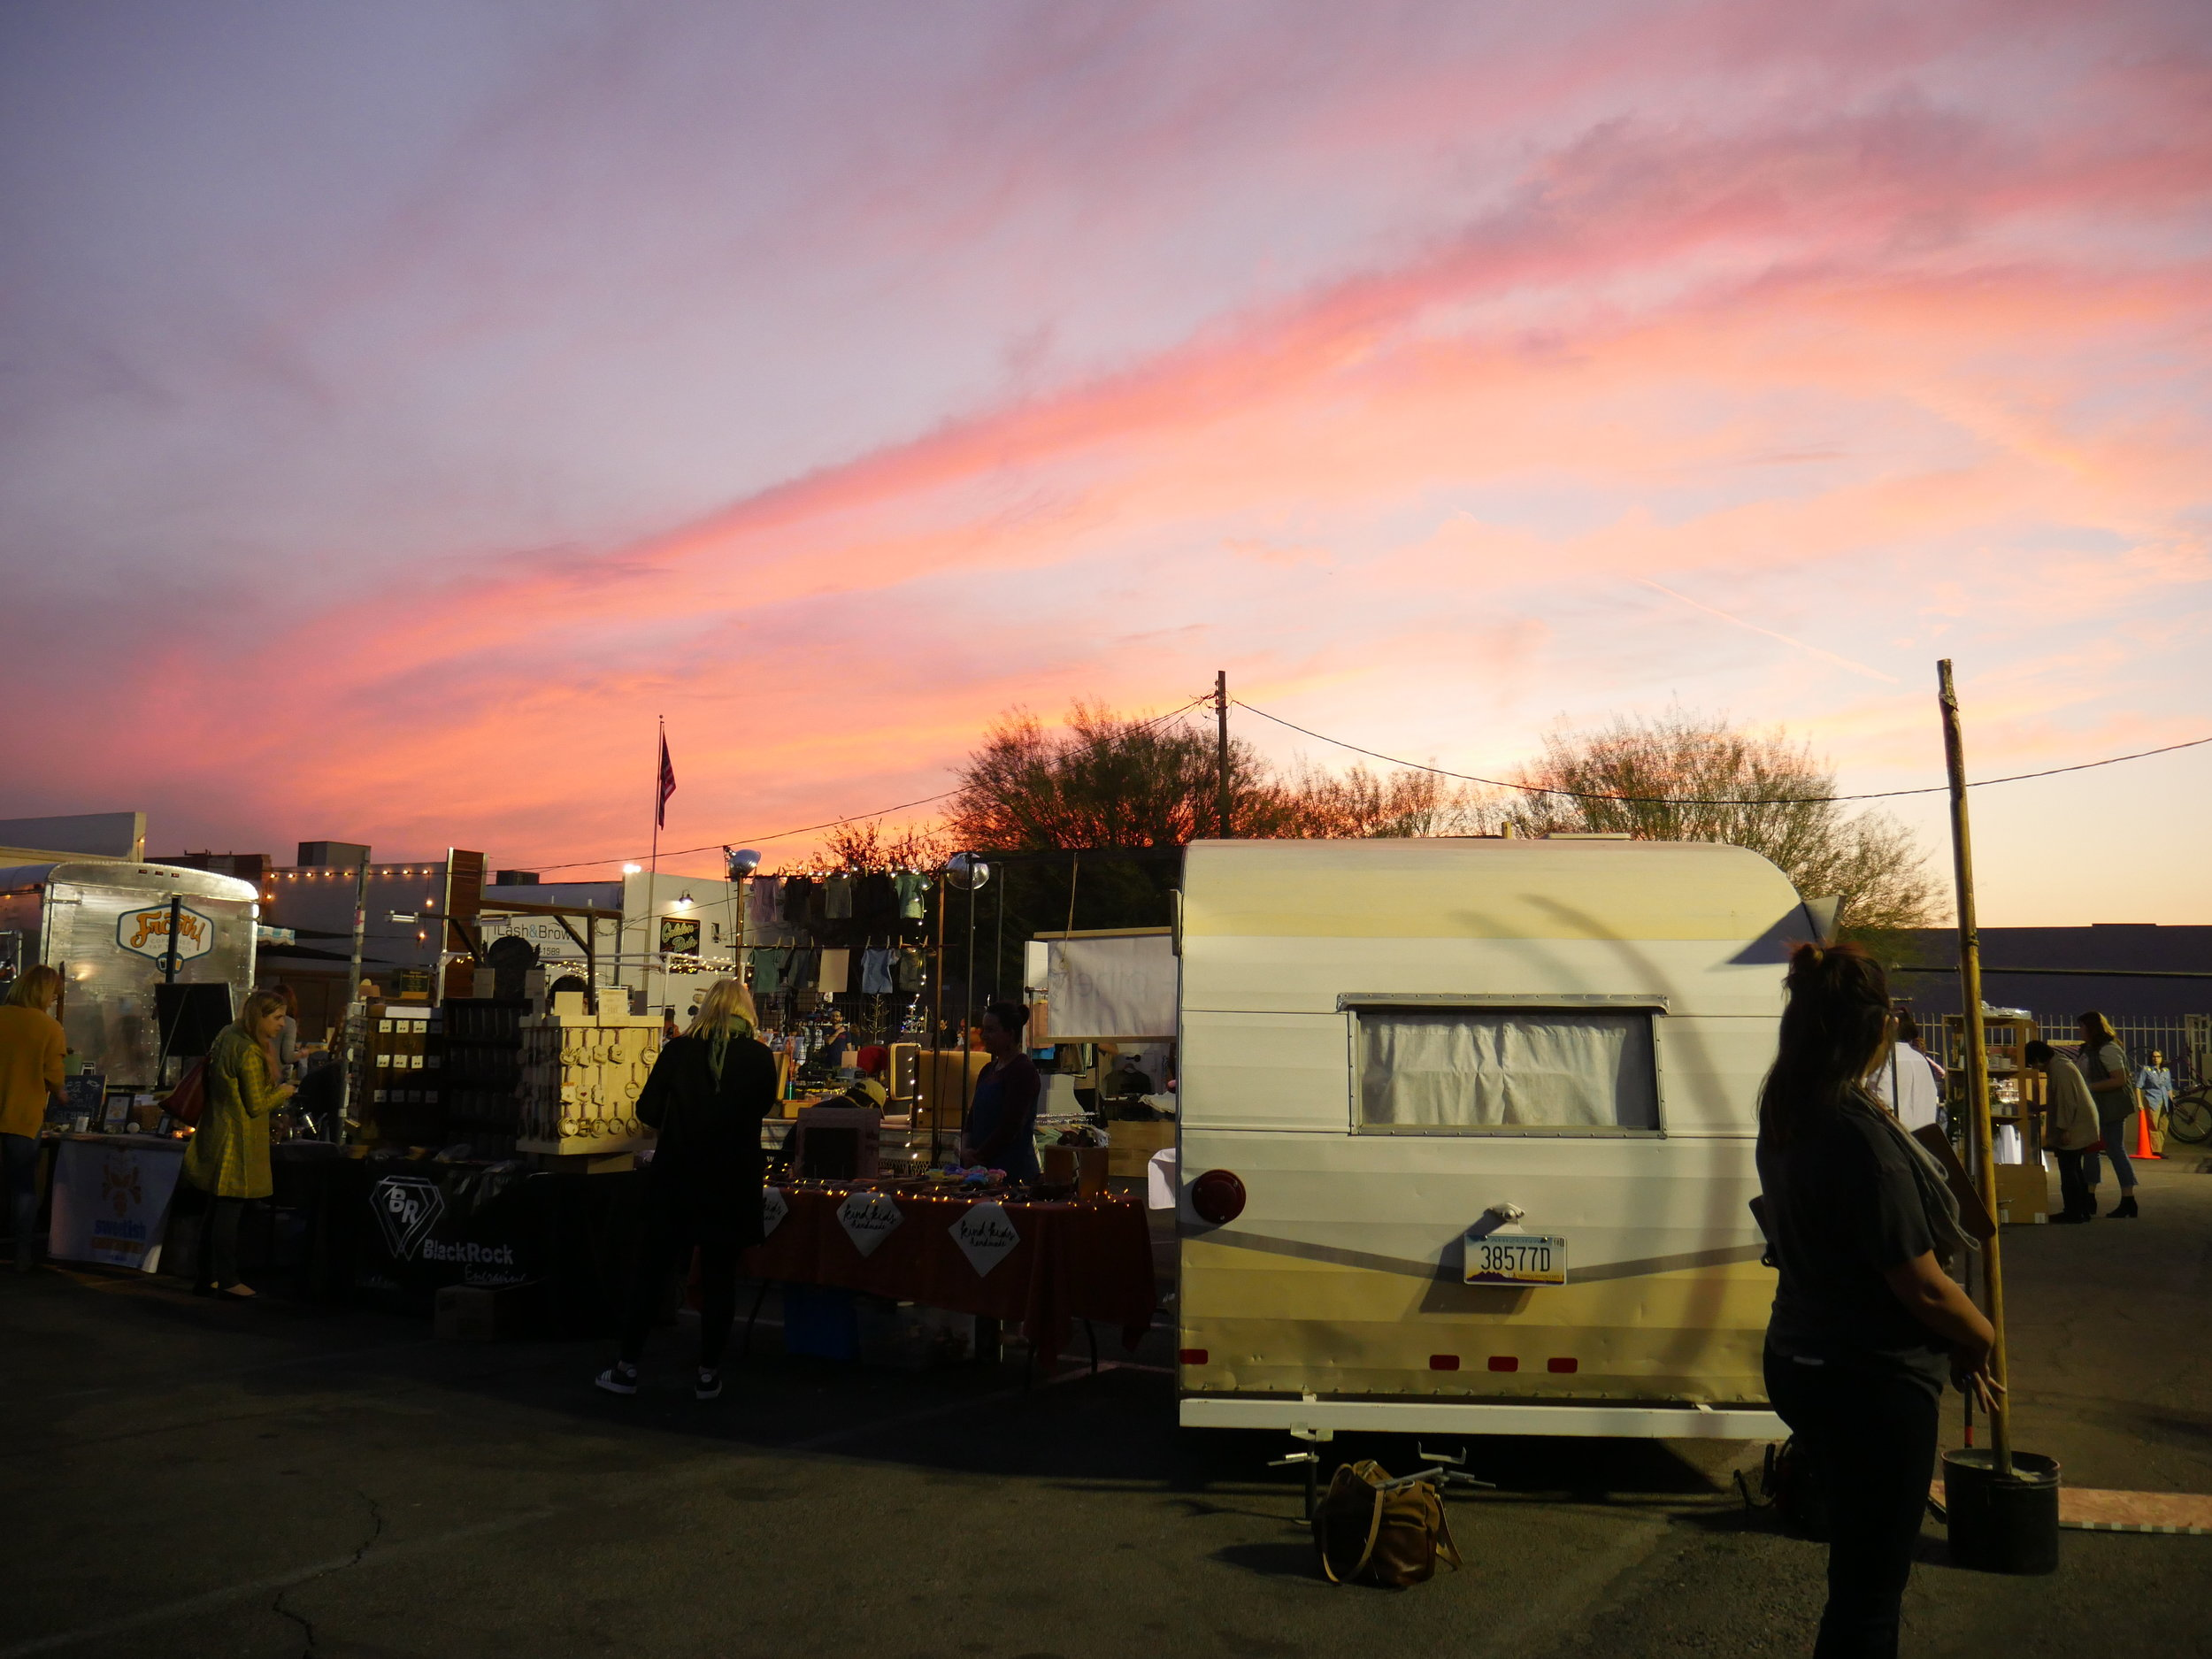 The sun sets over Crafeteria, an annual pop-up marketplace held in the parking lot behind Frances Vintage, in Phoenix, on Dec. 1, 2017.